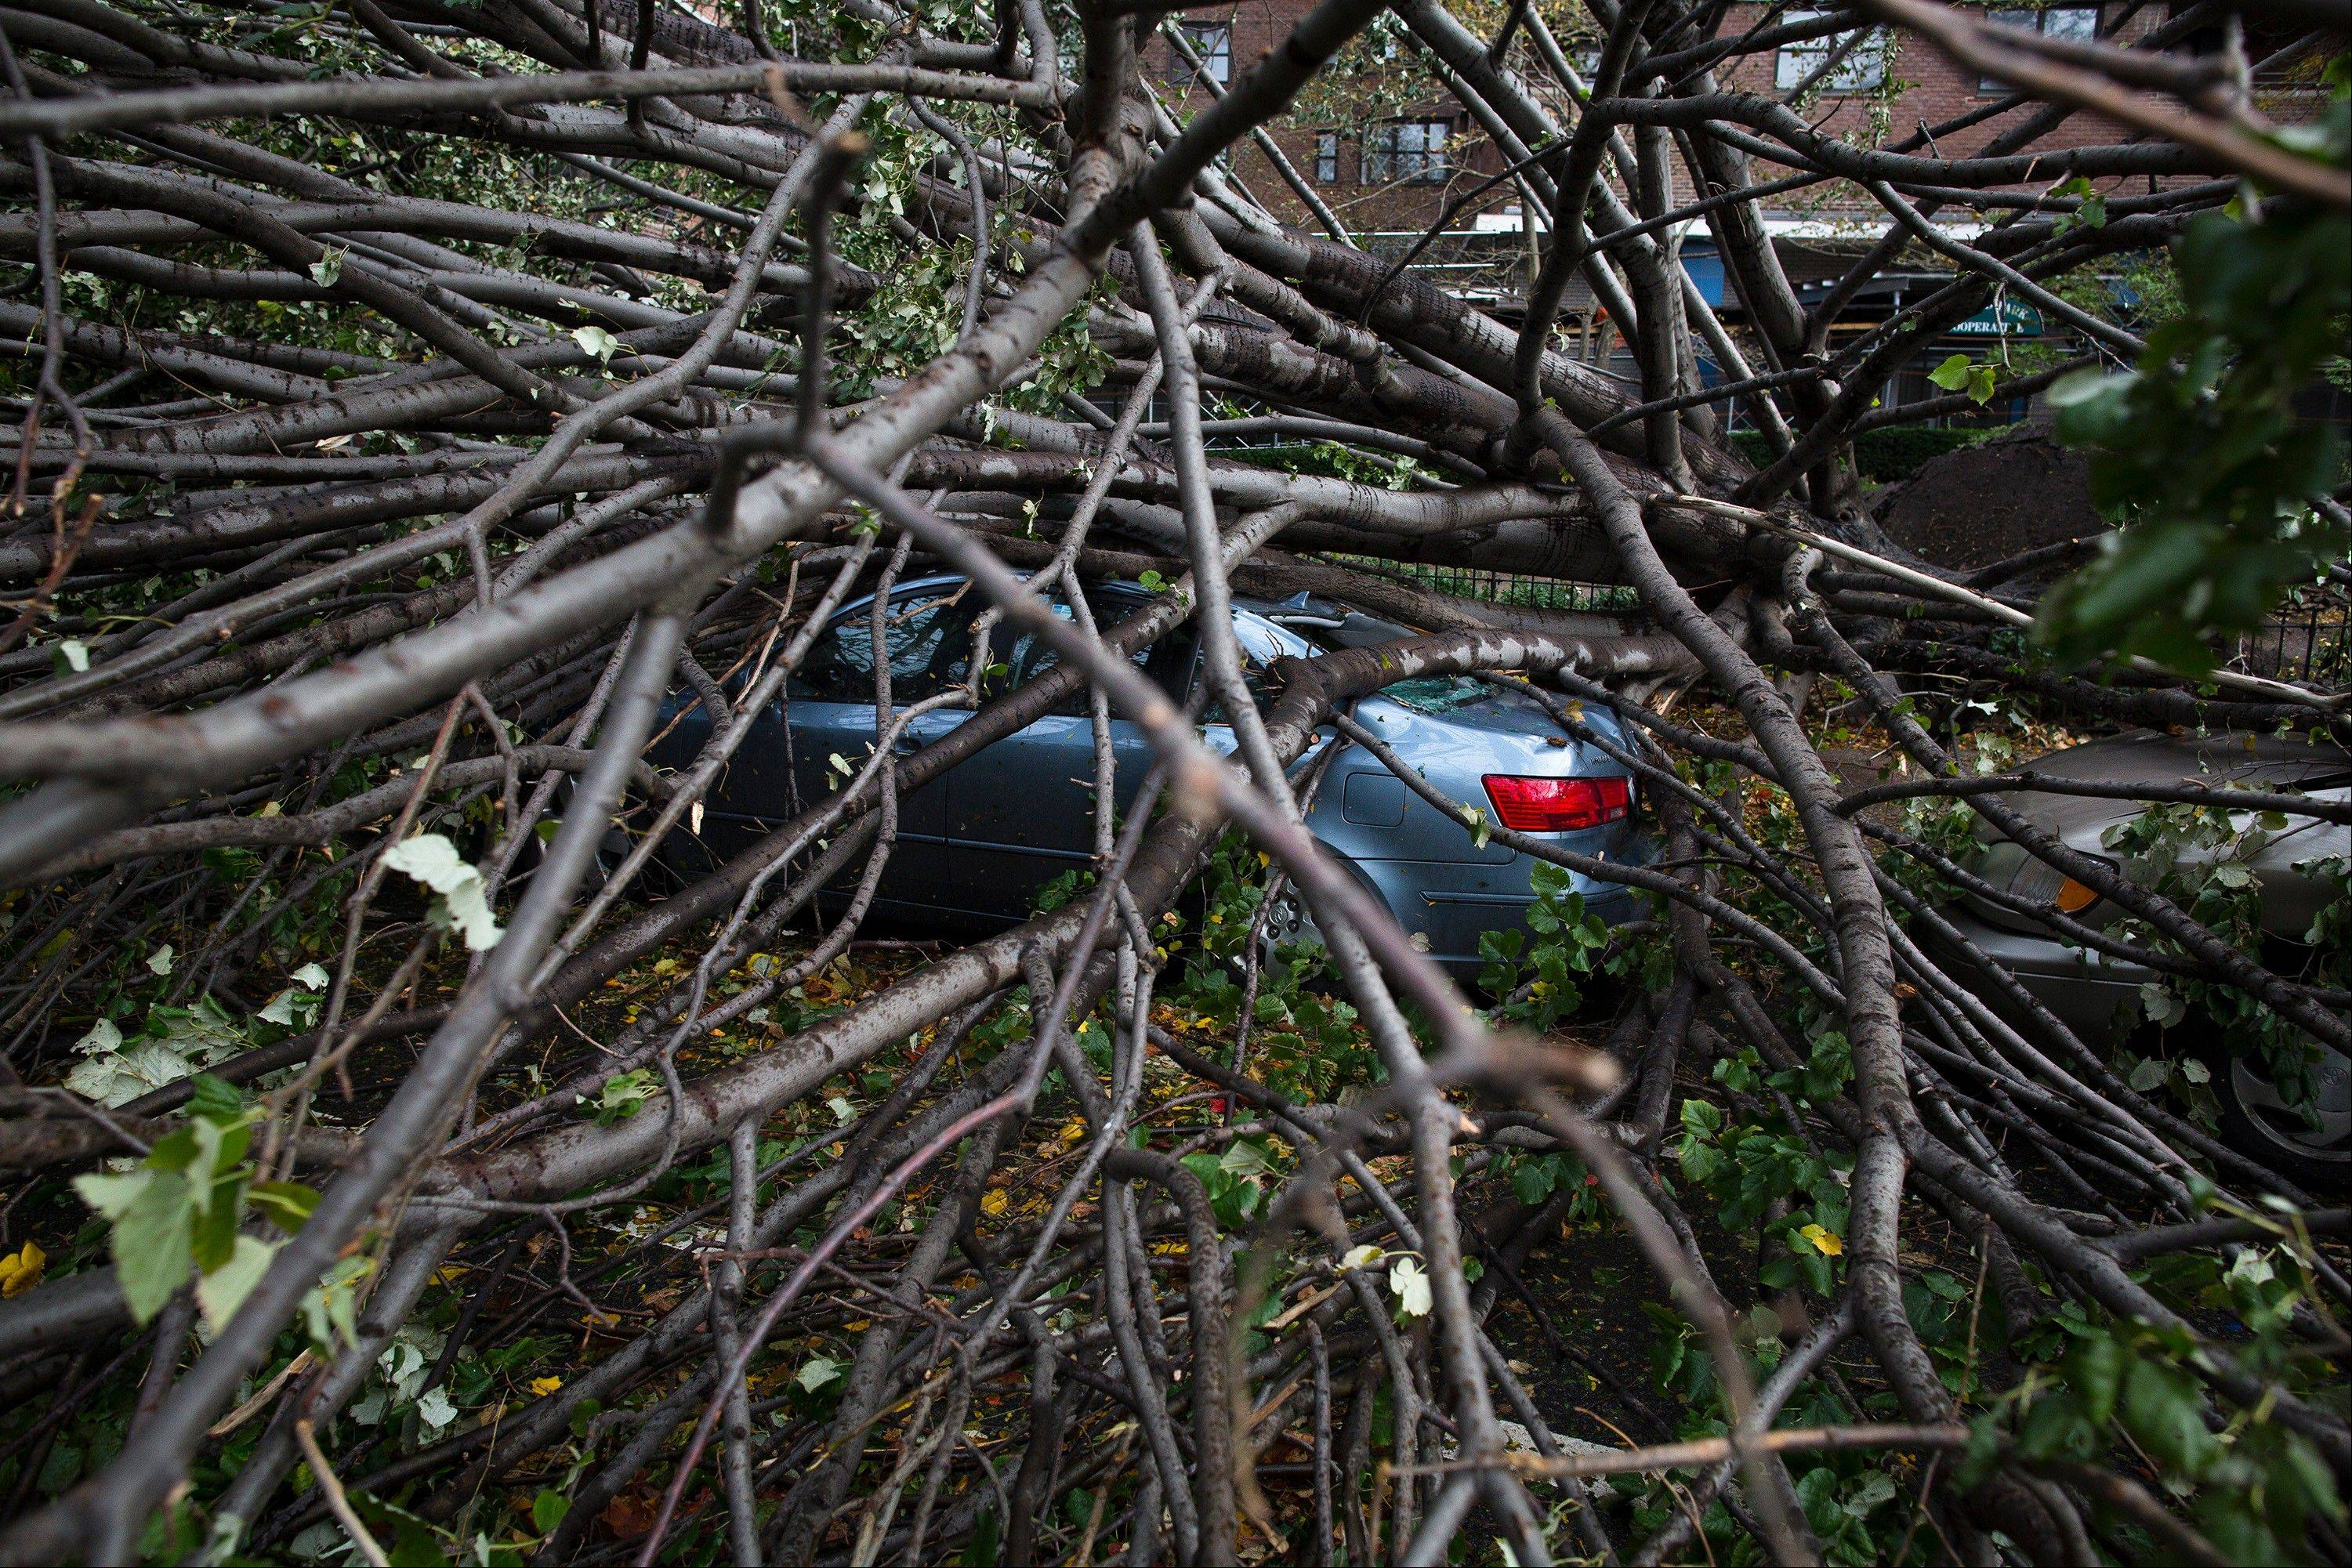 A car is crushed beneath a fallen tree on East Broadway in Manhattan's Lower East Side neighborhood, in the aftermath of superstorm Sandy, Tuesday, Oct. 30, 2012, in New York. New York City awakened Tuesday to a flooded subway system, shuttered financial markets and hundreds of thousands of people without power a day after a wall of seawater and high winds slammed into the city, destroying buildings and flooding tunnels.